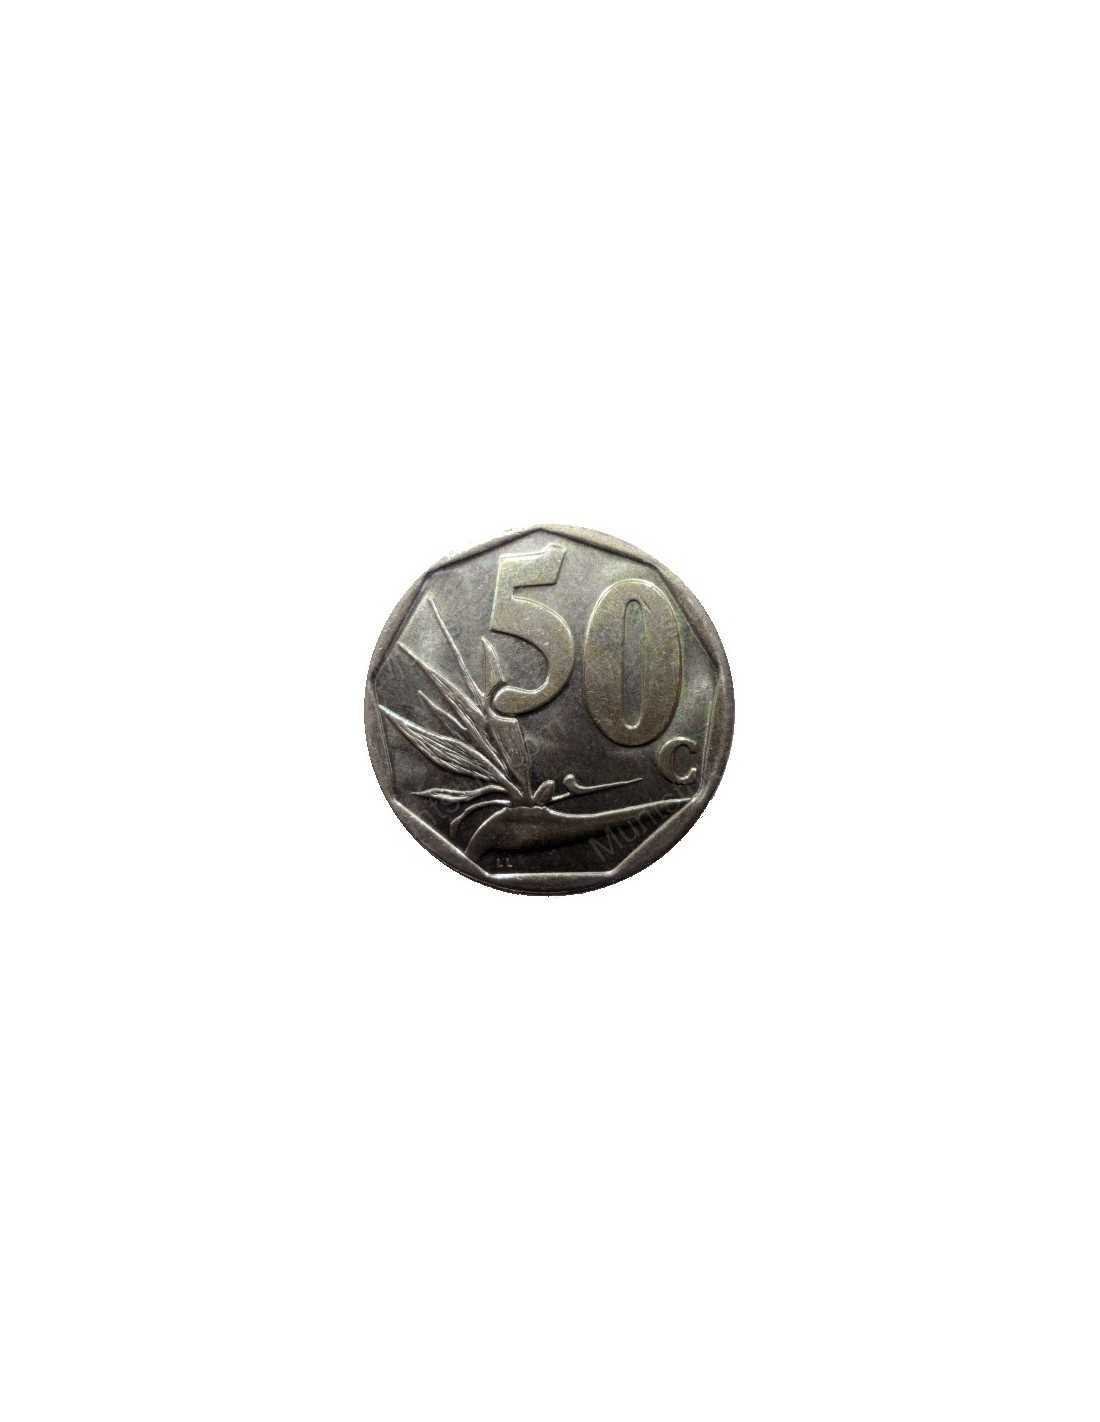 World coins > south africa > third decimal(1989 to date) > fifty